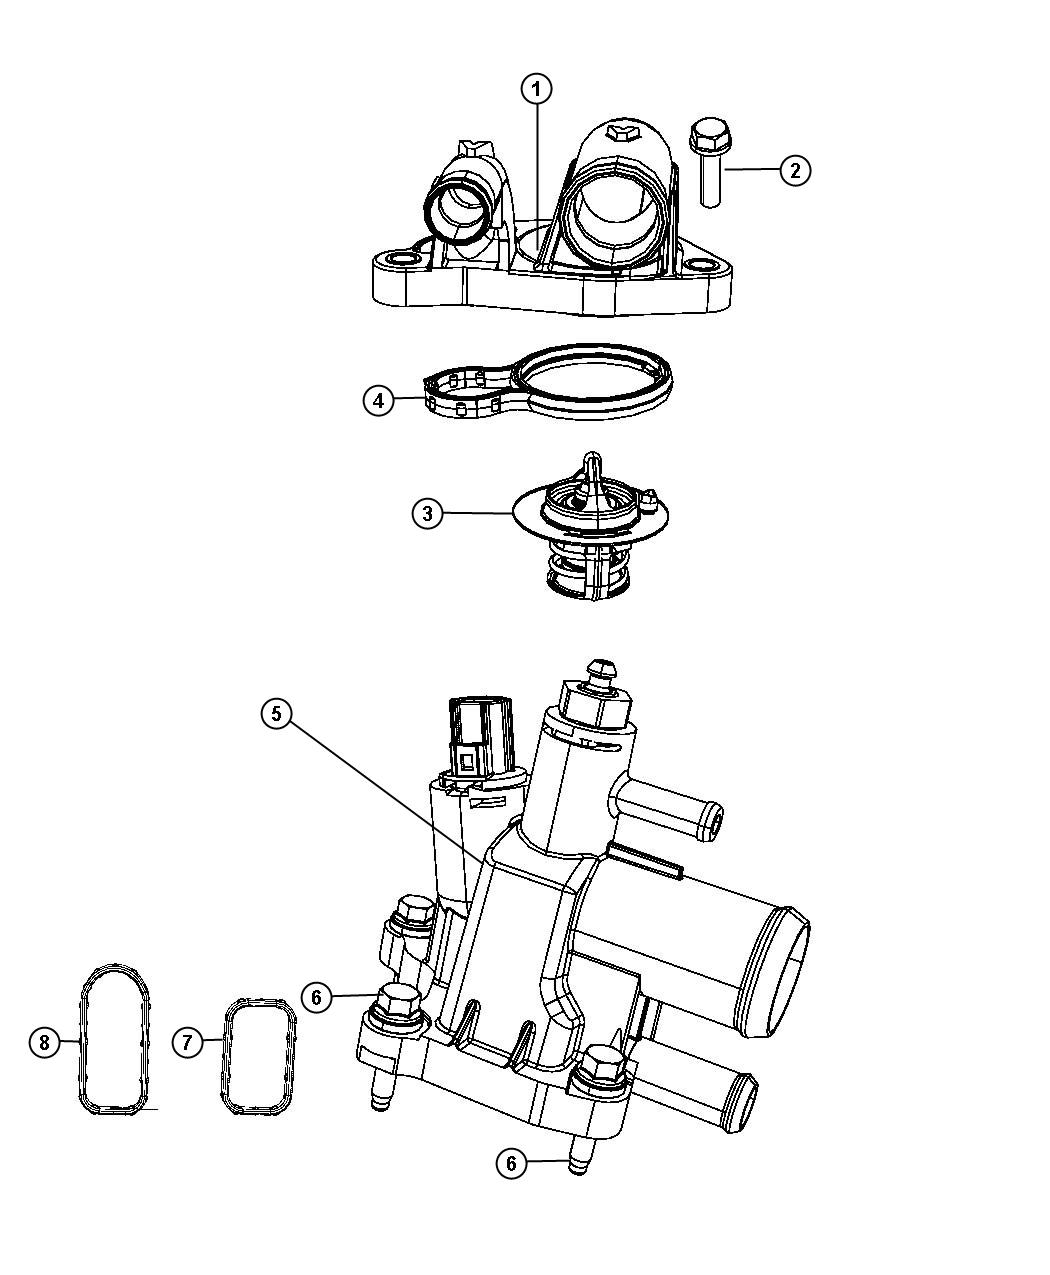 1998 Dodge Caravan Horn Wiring Diagram Water Pump Images Gallery